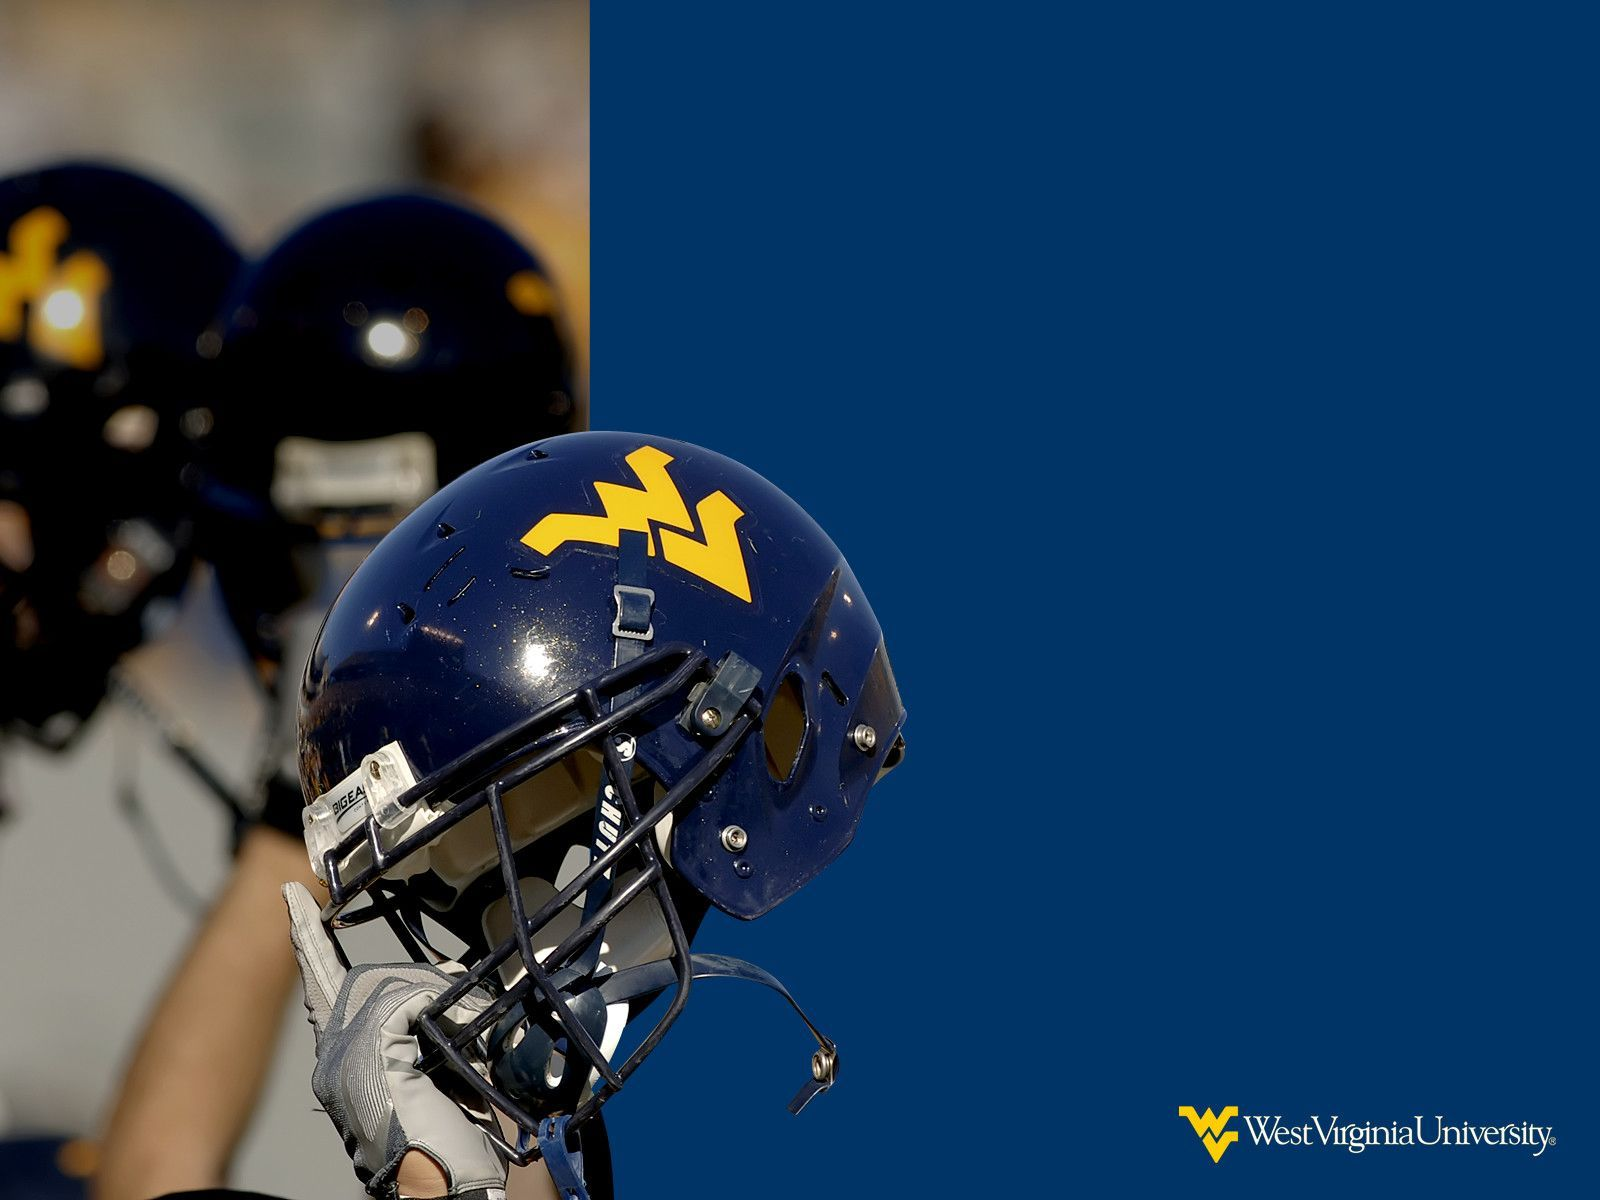 Friendship Quotes Wallpapers Free Download For Desktop Download Wvu Football Wallpaper Gallery